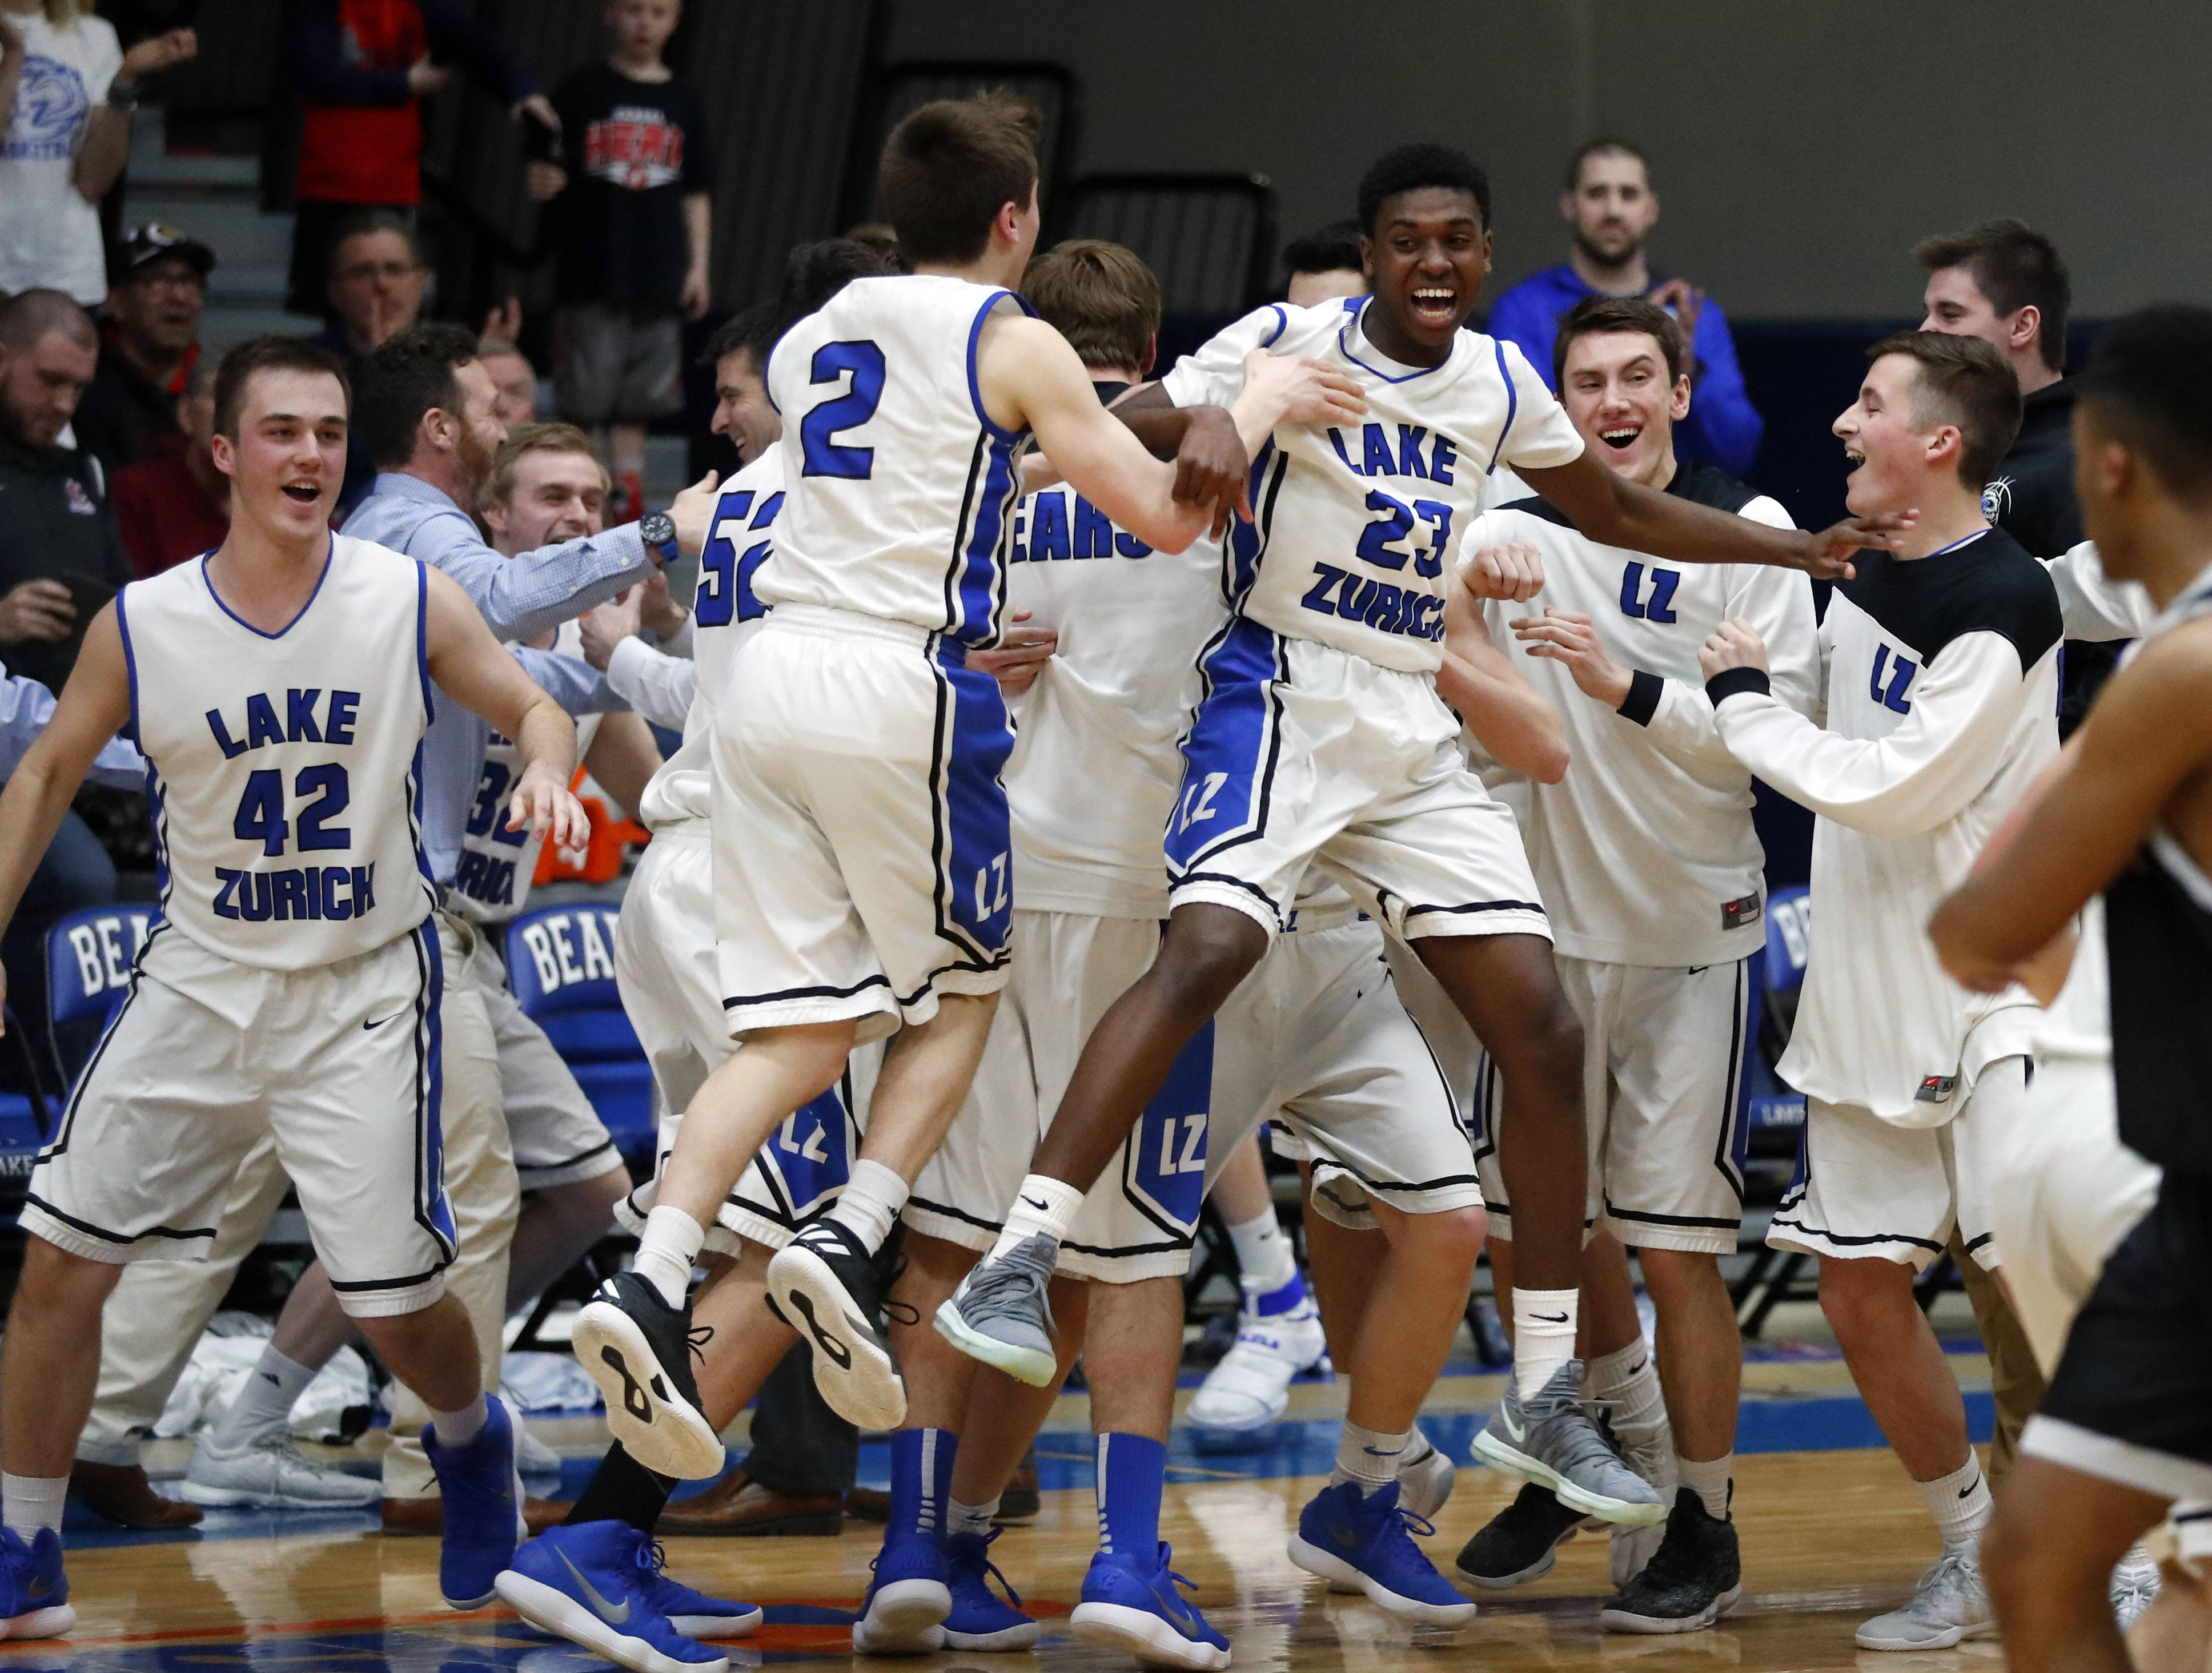 Lake Zurich players react during their 69-60 win over Barrington in the Class 4A sectional final at Lake Zurich on Friday.